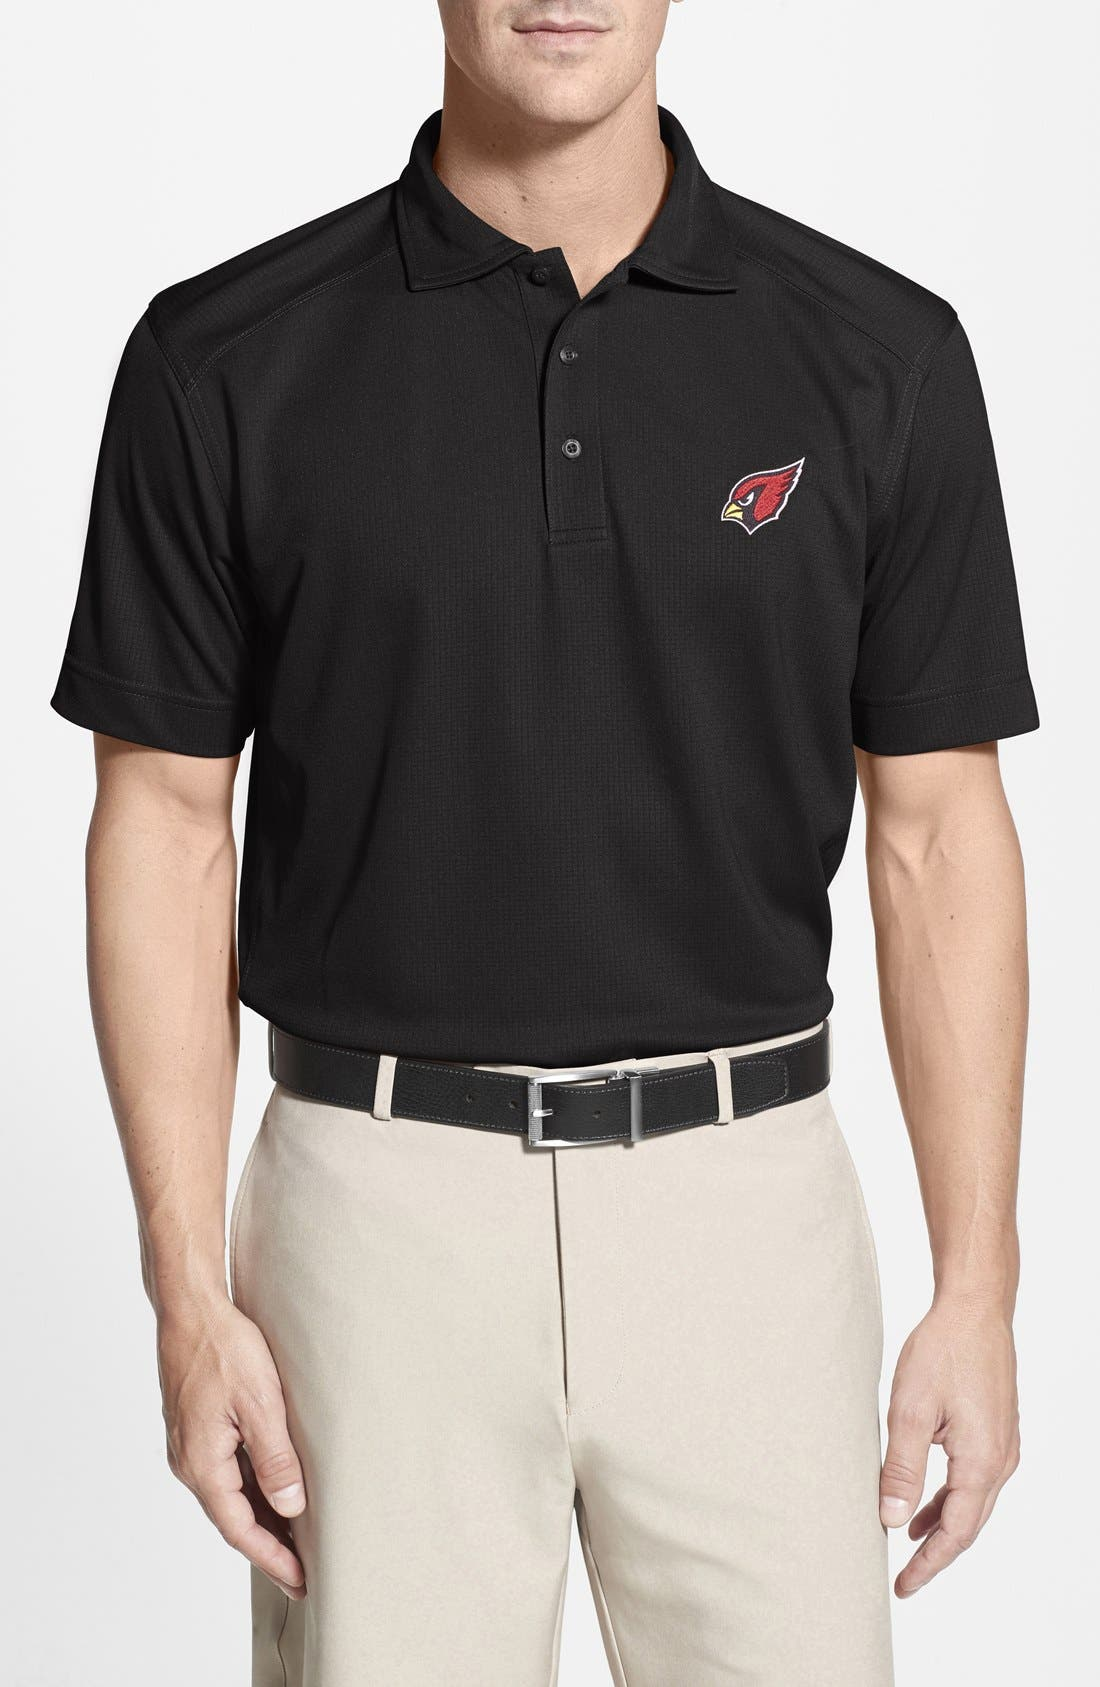 Alternate Image 1 Selected - Cutter & Buck Arizona Cardinals - Genre DryTec Moisture Wicking Polo